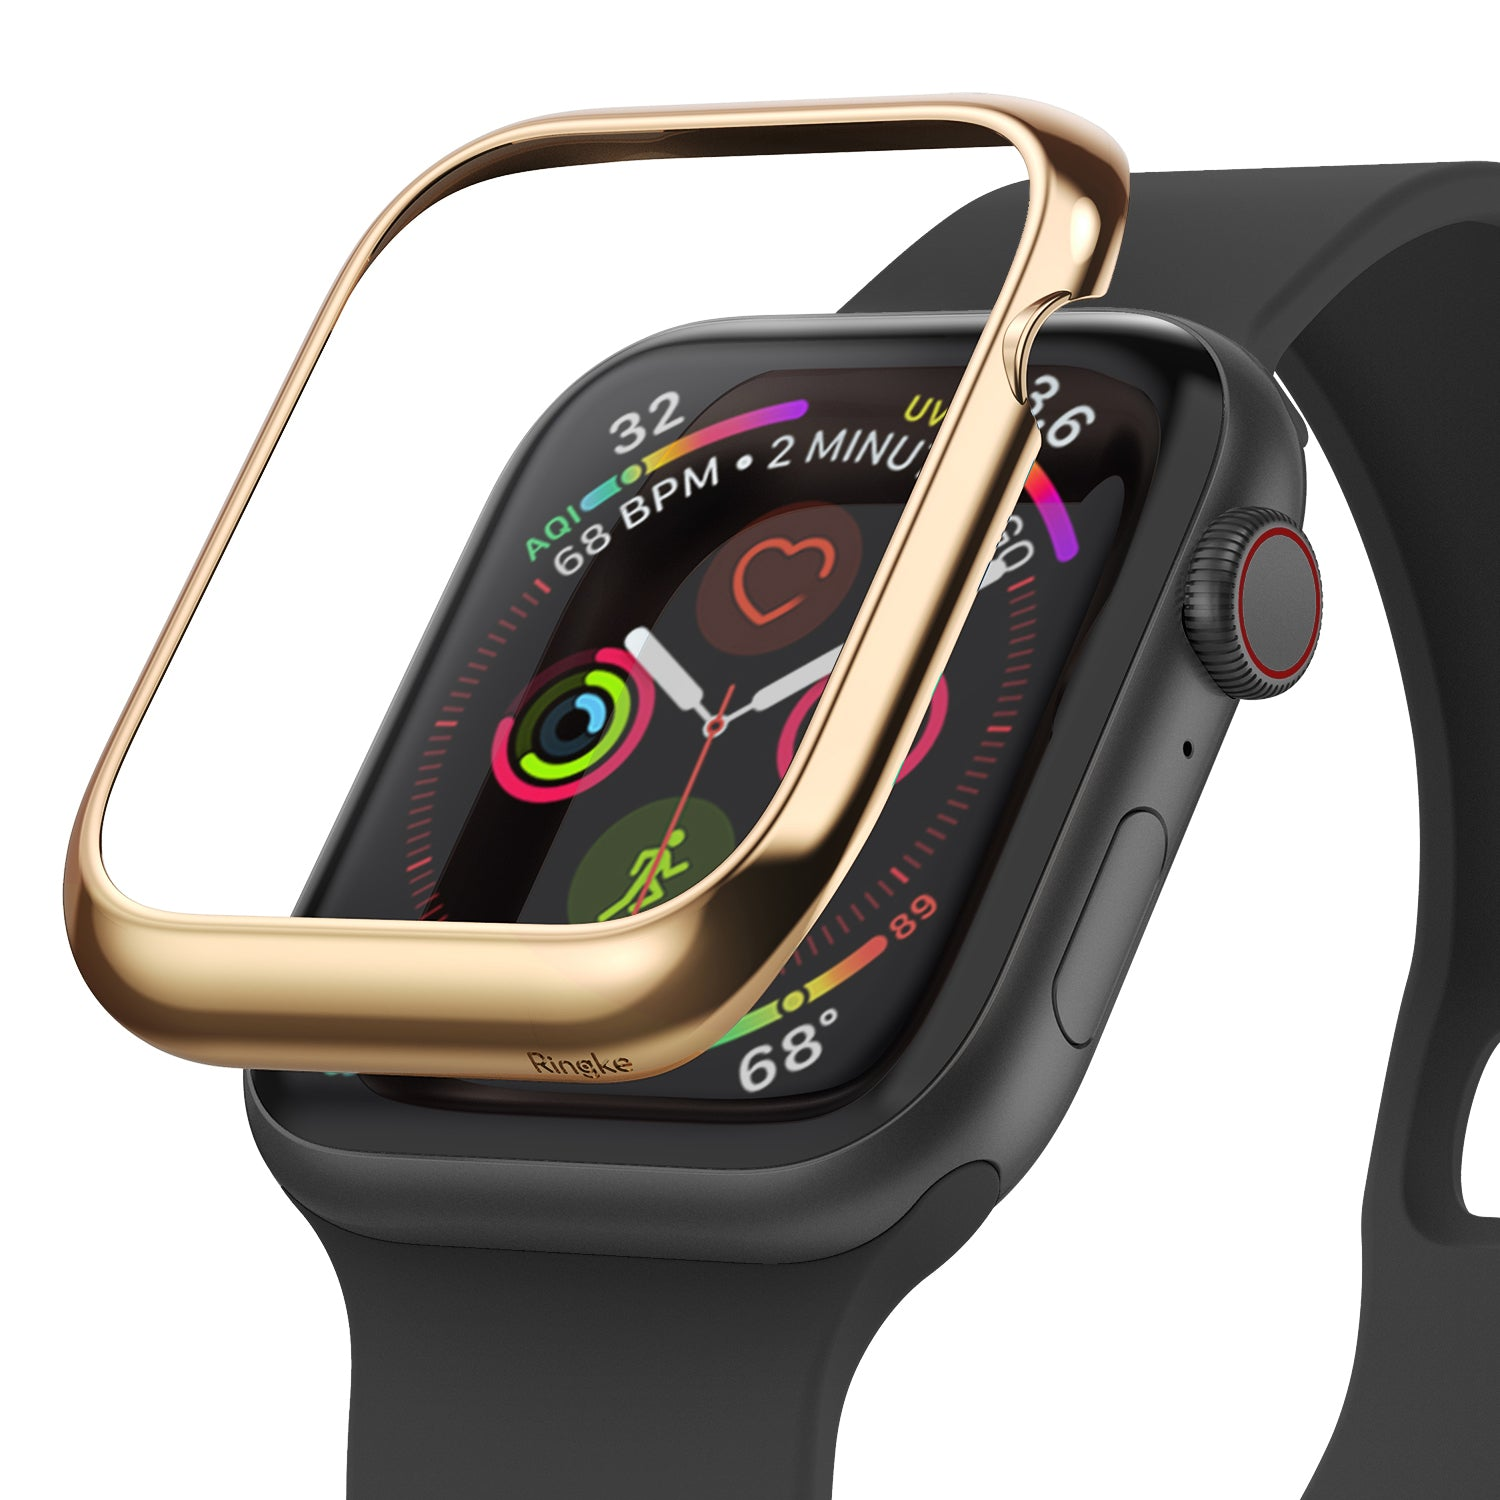 ringke bezel styling 40-05 glossy gold stainless steel on apple watch series 6 / 5 / 4 / SE 40mm